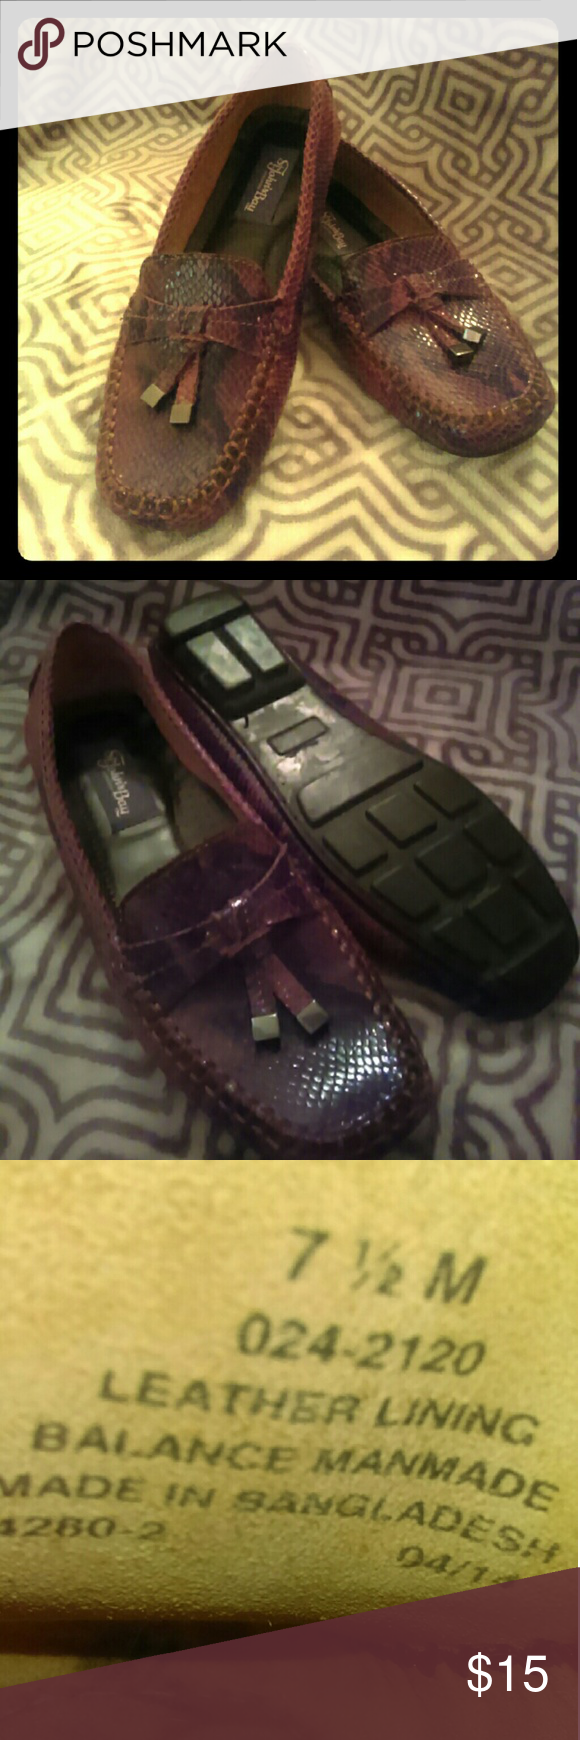 ST John's Bay women's Molly Snakeskin-type Loafers Great condition Women's loafers.  Snakeskin type Leather.  Worn once! These are size 7.5 and have flexible leather siding for all day comfort! St. John's Bay Shoes Flats & Loafers